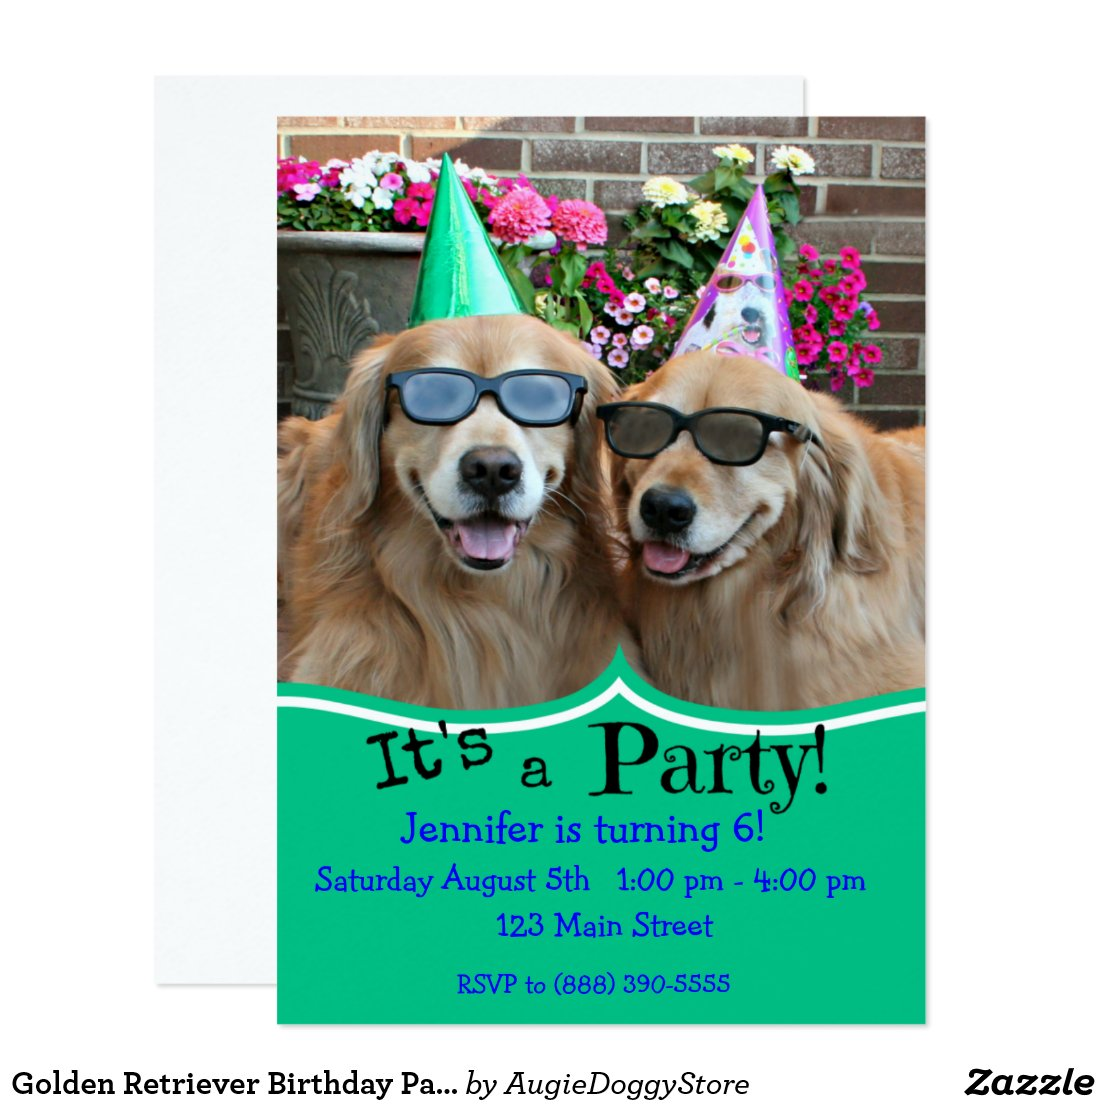 Golden Retriever Birthday Party Card